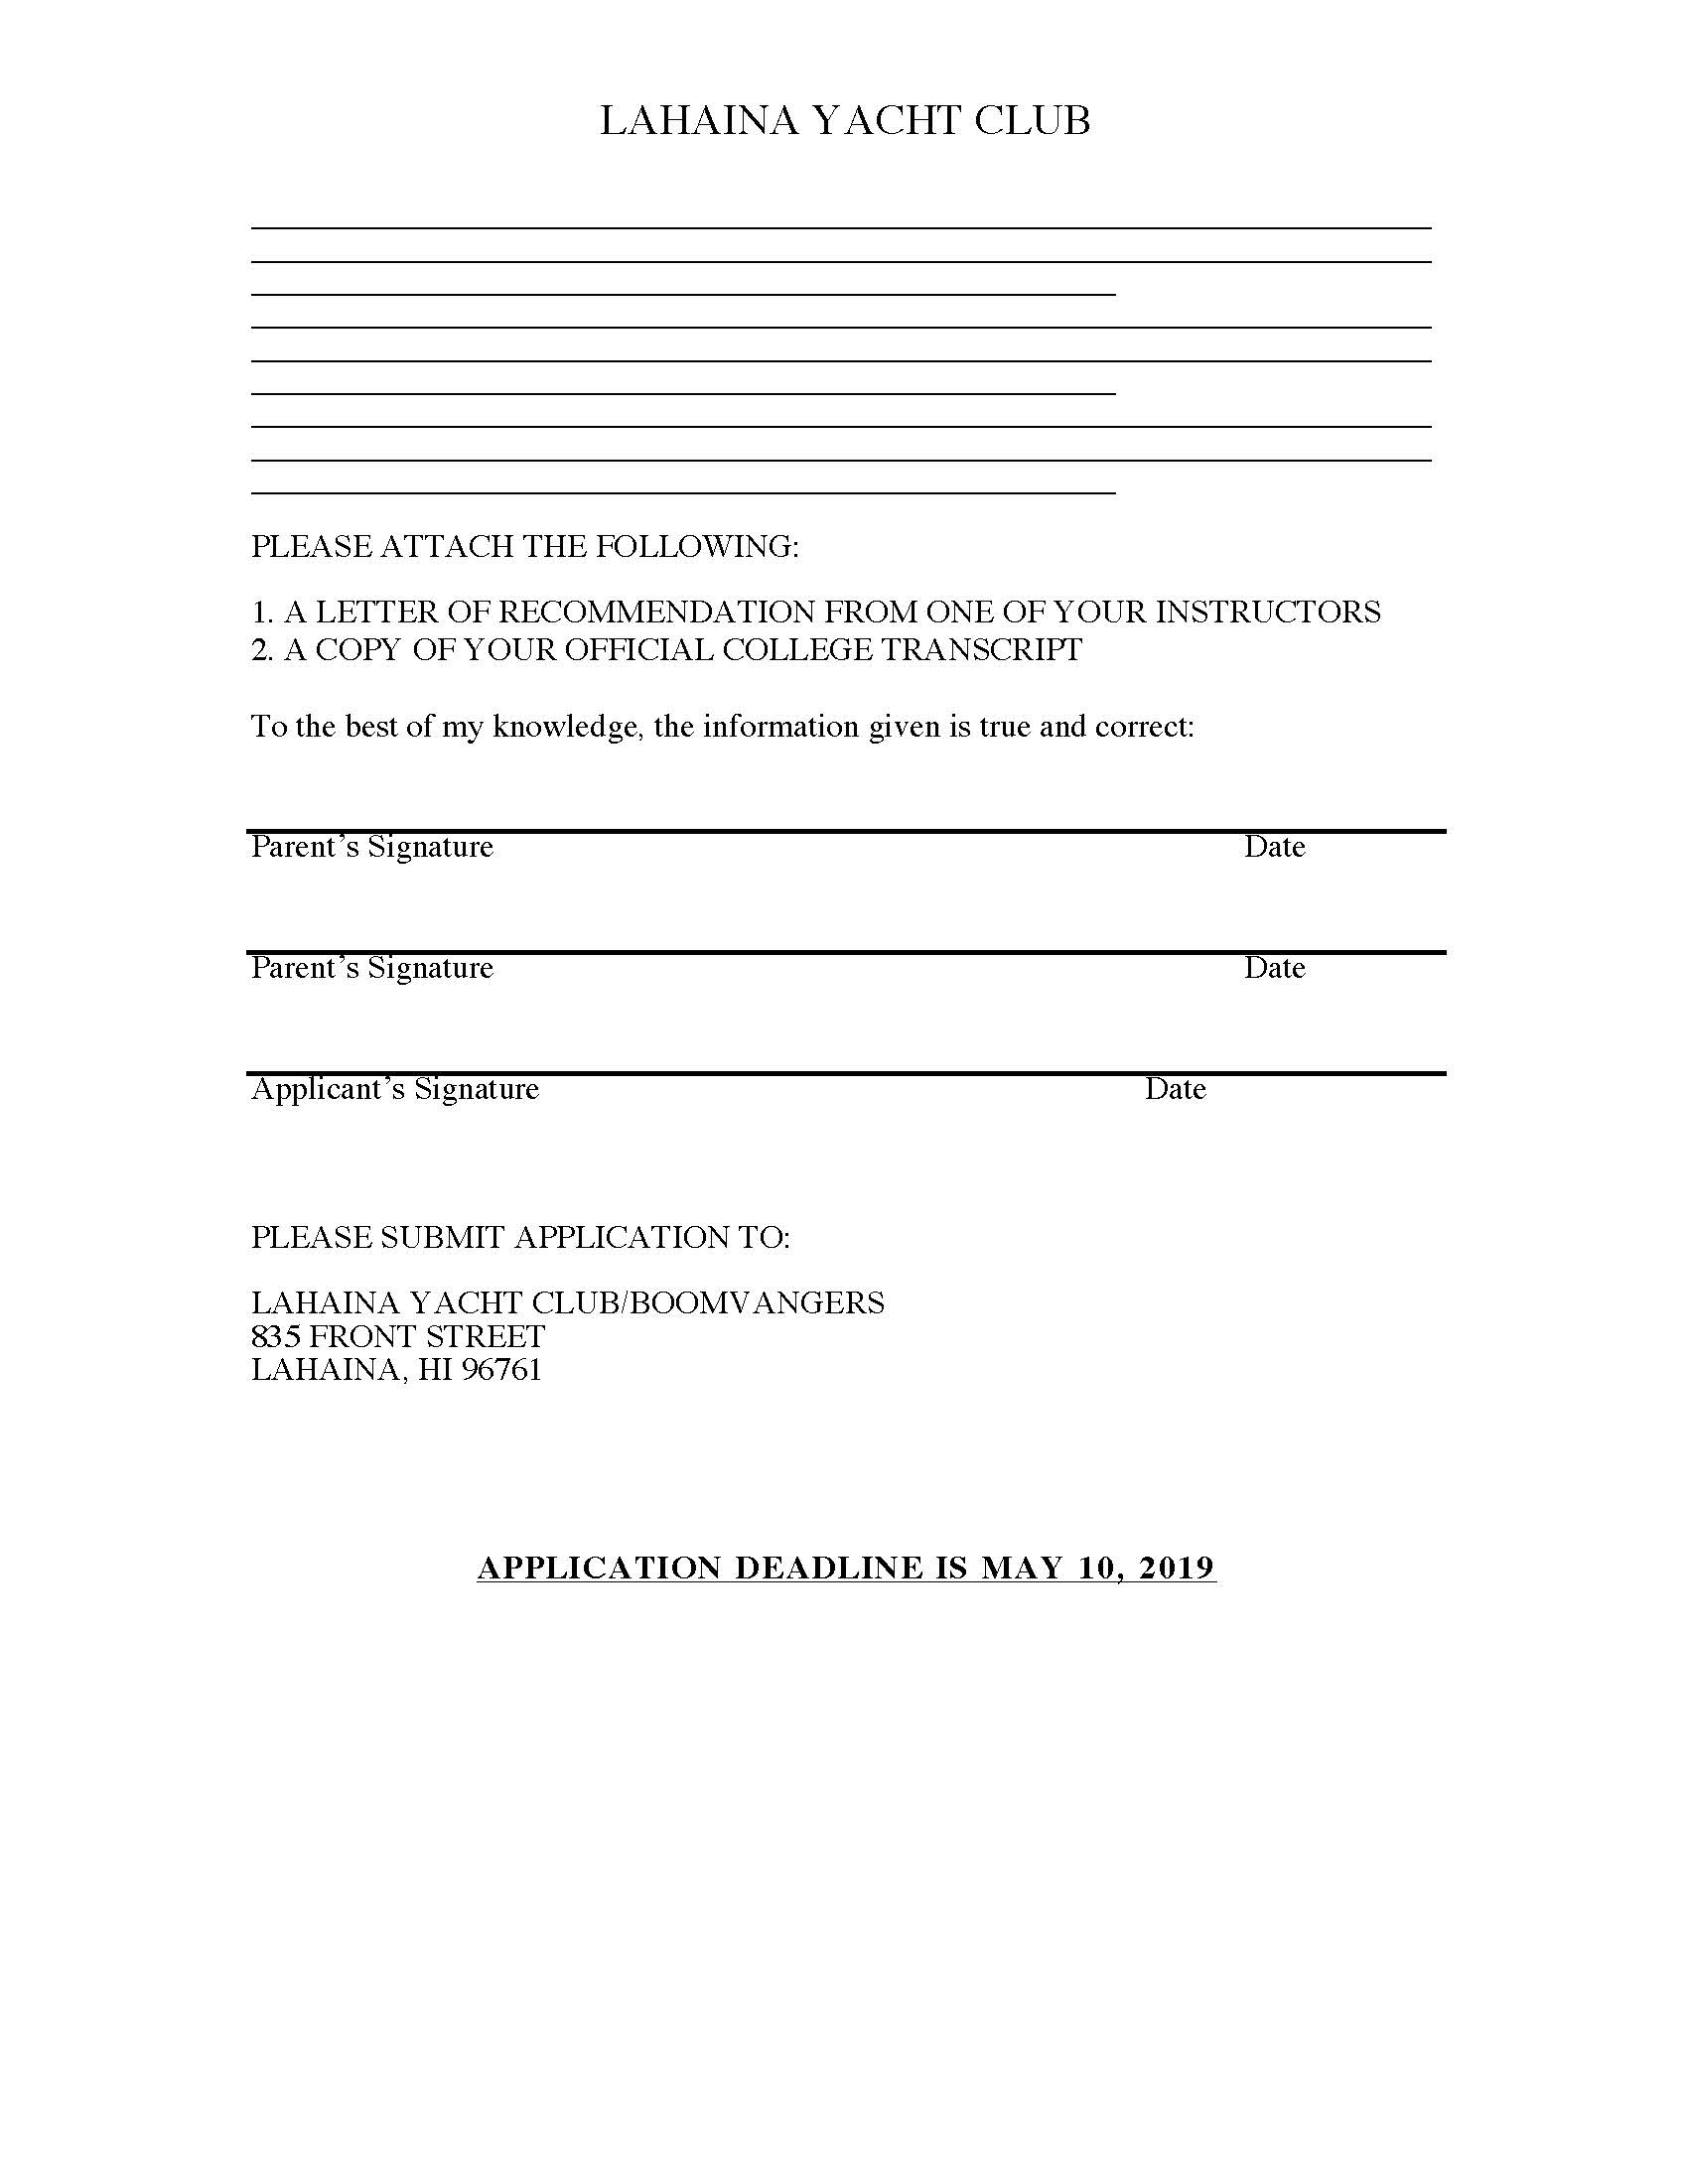 LYC PERPETUAL SCHOLARSHIP APPLICATION.2019_Page_2.jpg